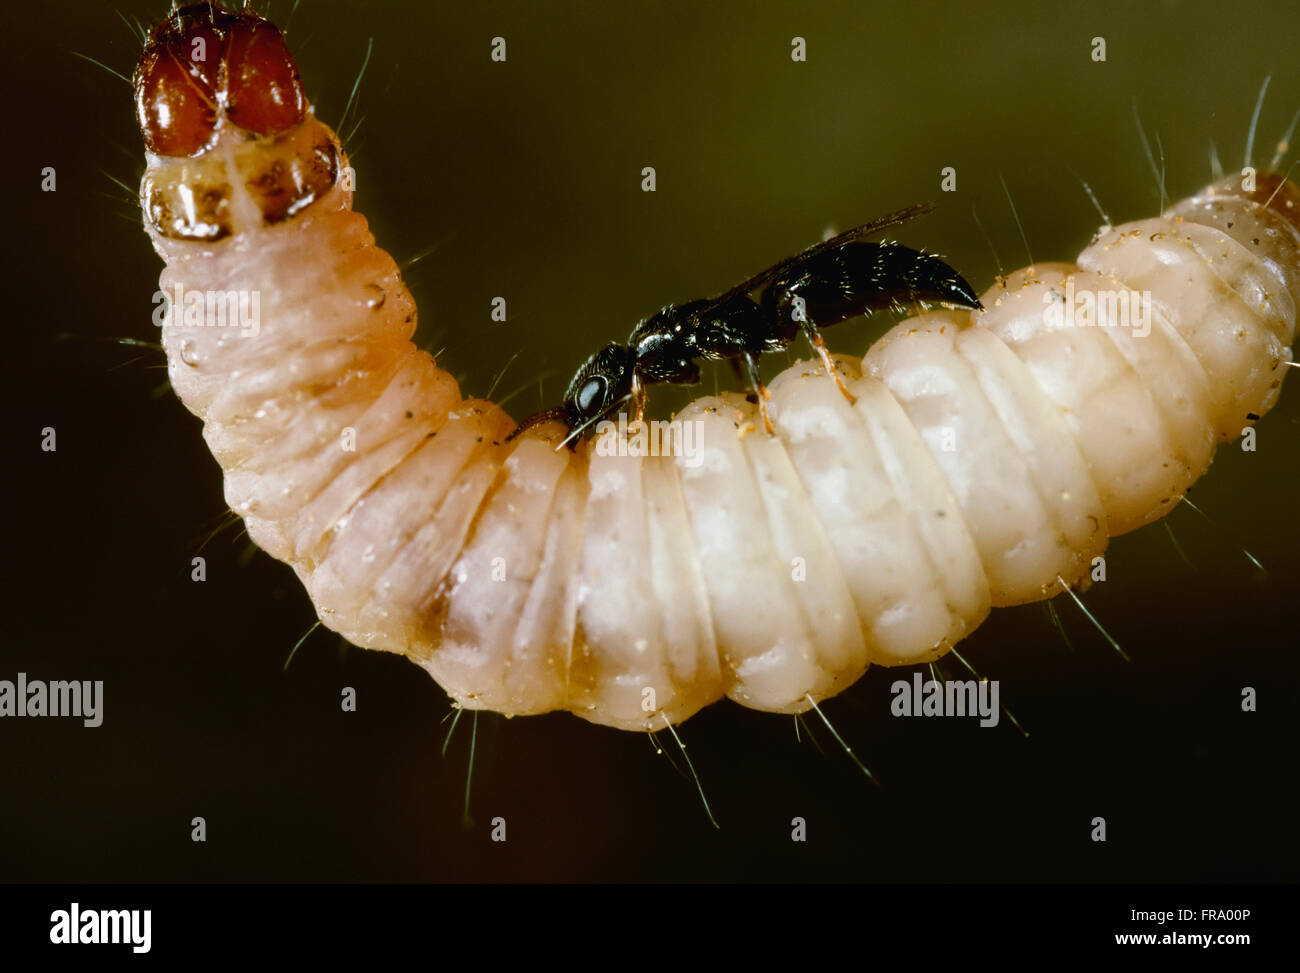 Agriculture - Beneficial Insect, (Goniozus legneri) a small parasitic wasp is a natural control of the Navel Orangeworm - Stock Image